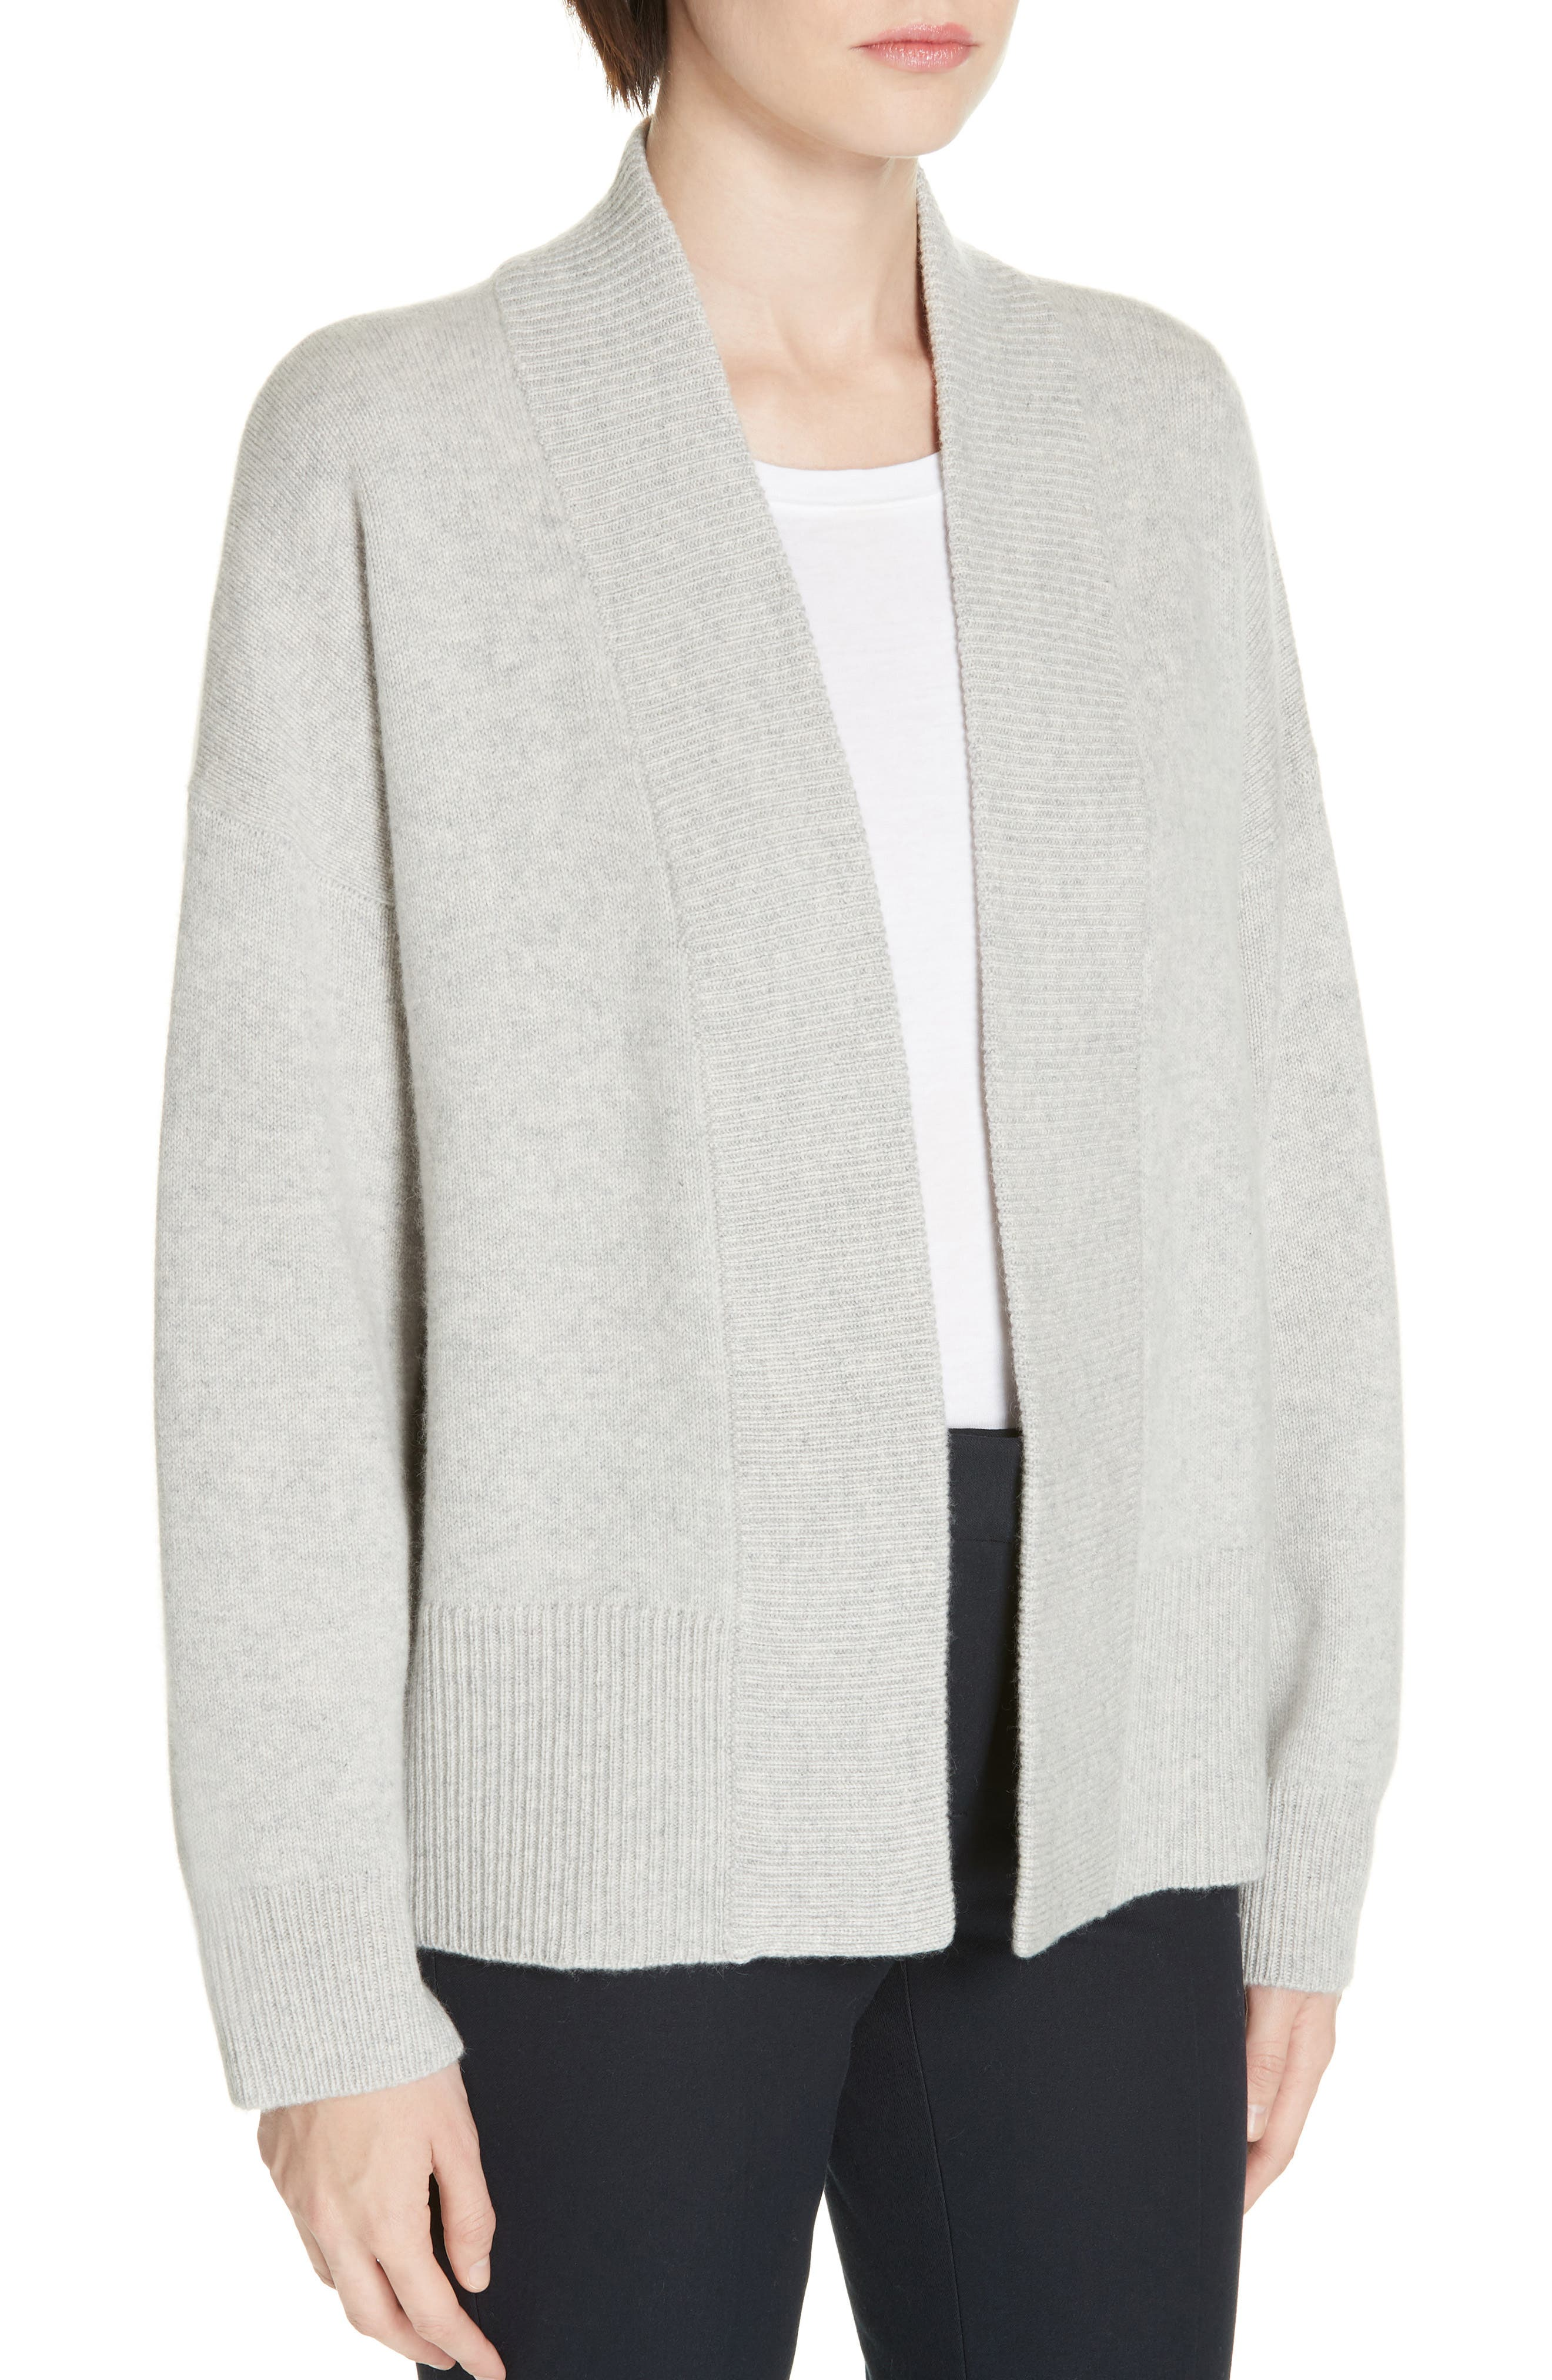 NORDSTROM SIGNATURE, Cashmere Blend Cardigan, Alternate thumbnail 4, color, GREY CLAY HEATHER